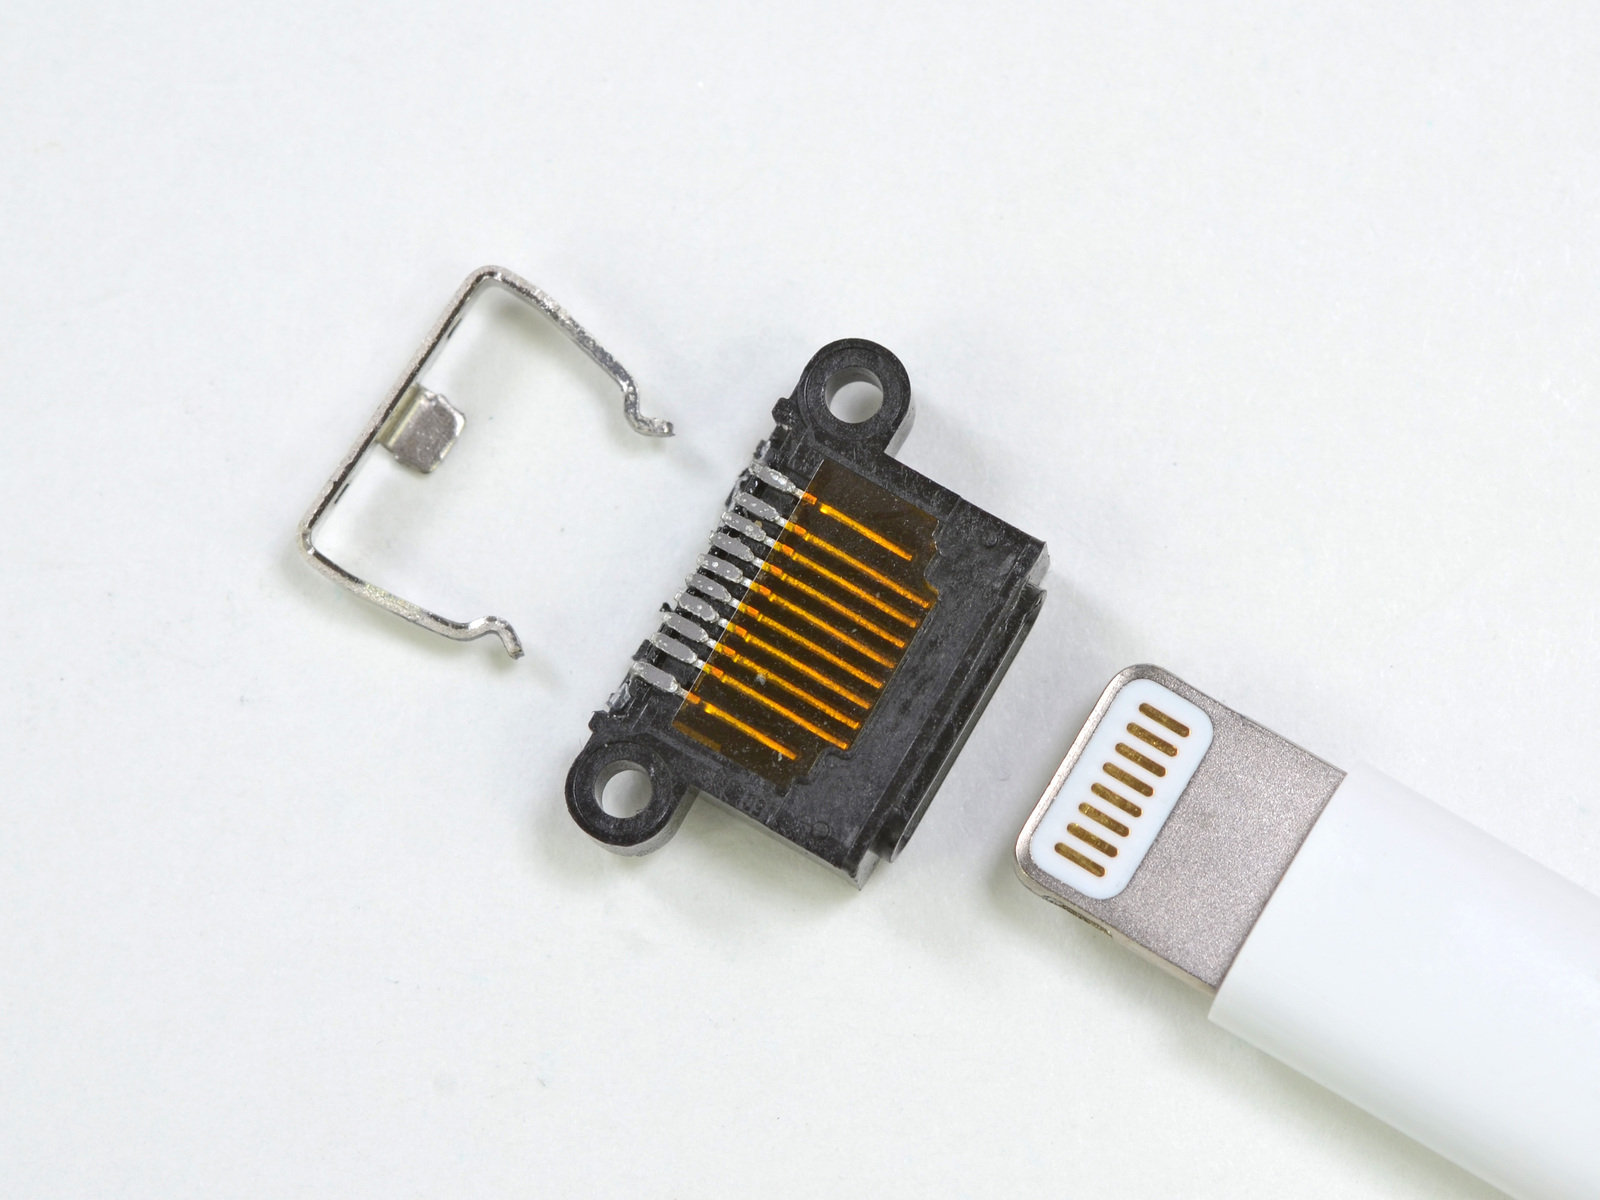 hight resolution of enlarge the iphone 5 s lightning connector disassembled note two